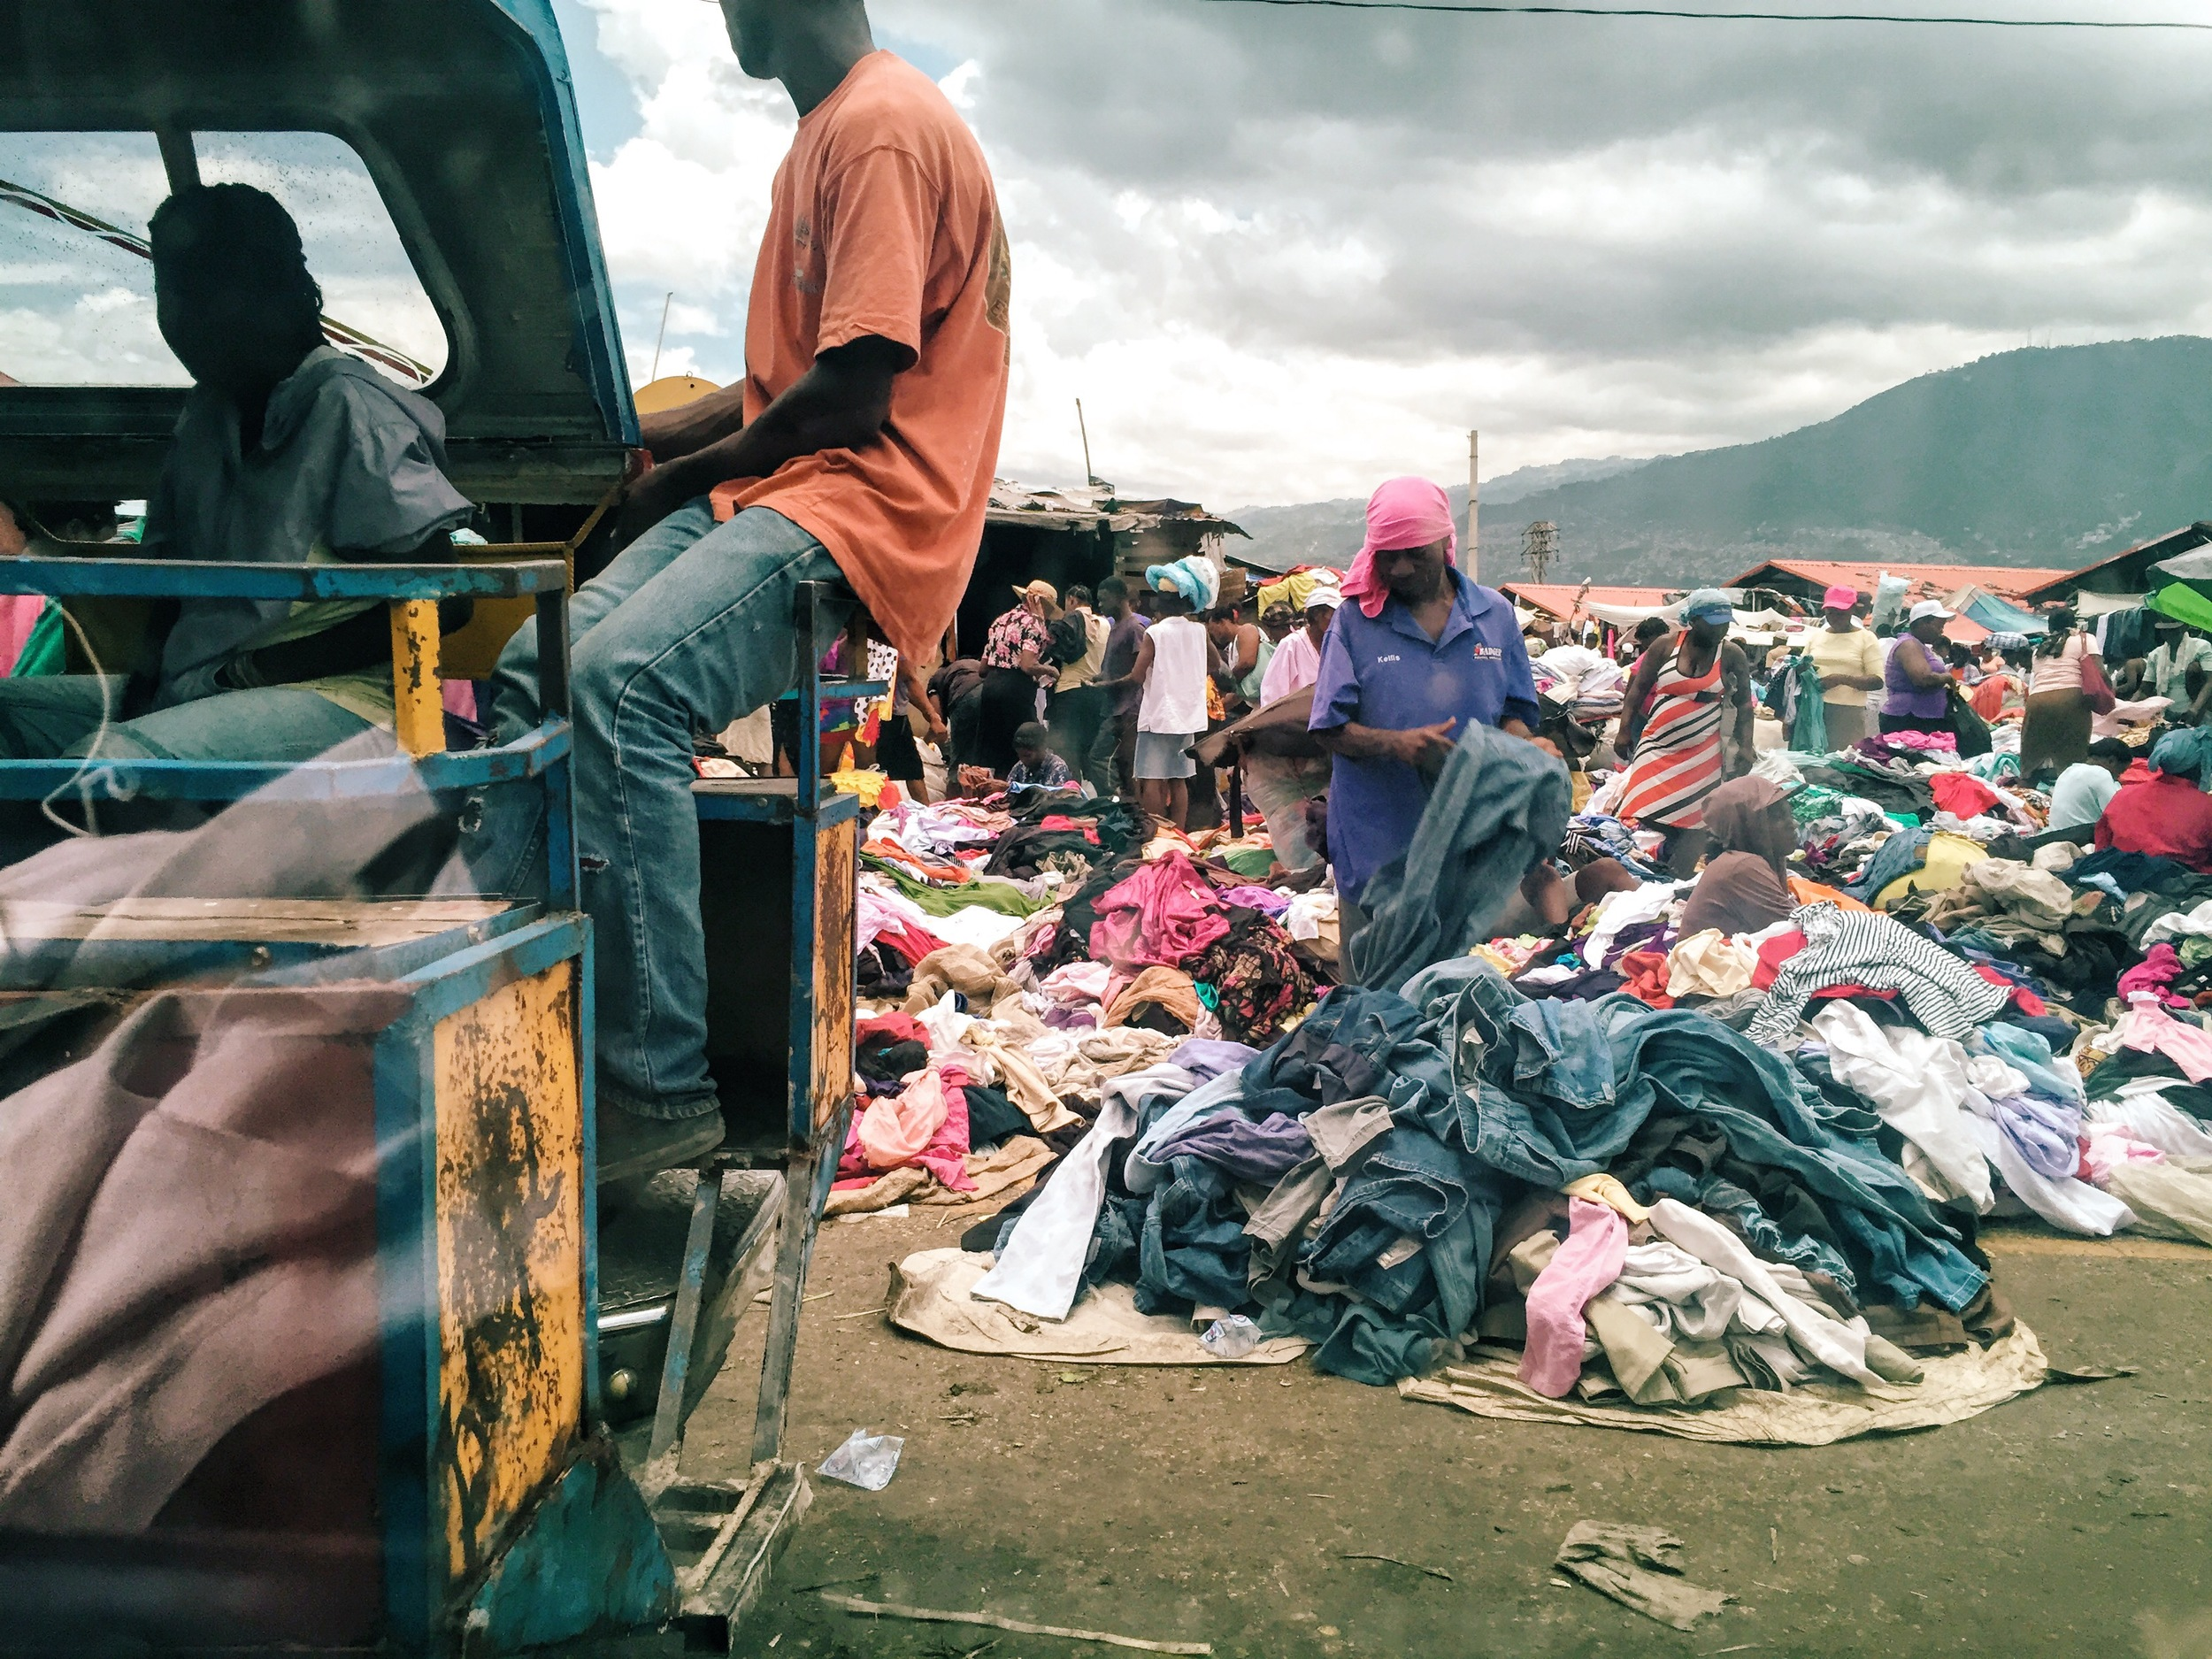 A local market in downtown Port-au-Prince, where a man sifts through a pile of secondhand clothing.